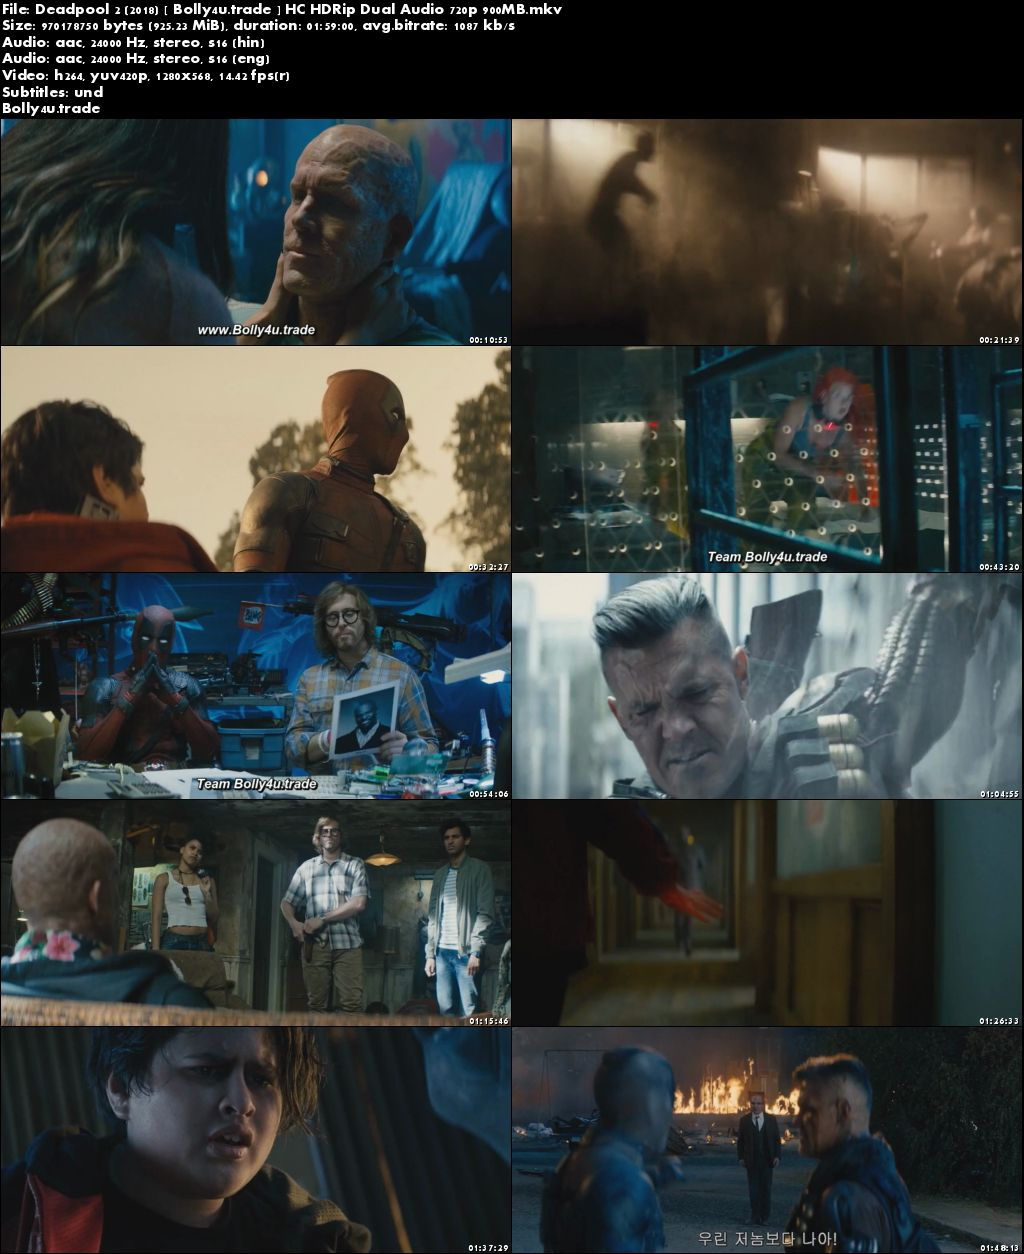 Deadpool 2 2018 HC HDRip 900MB Hindi Dubbed Dual Audio 720p Download